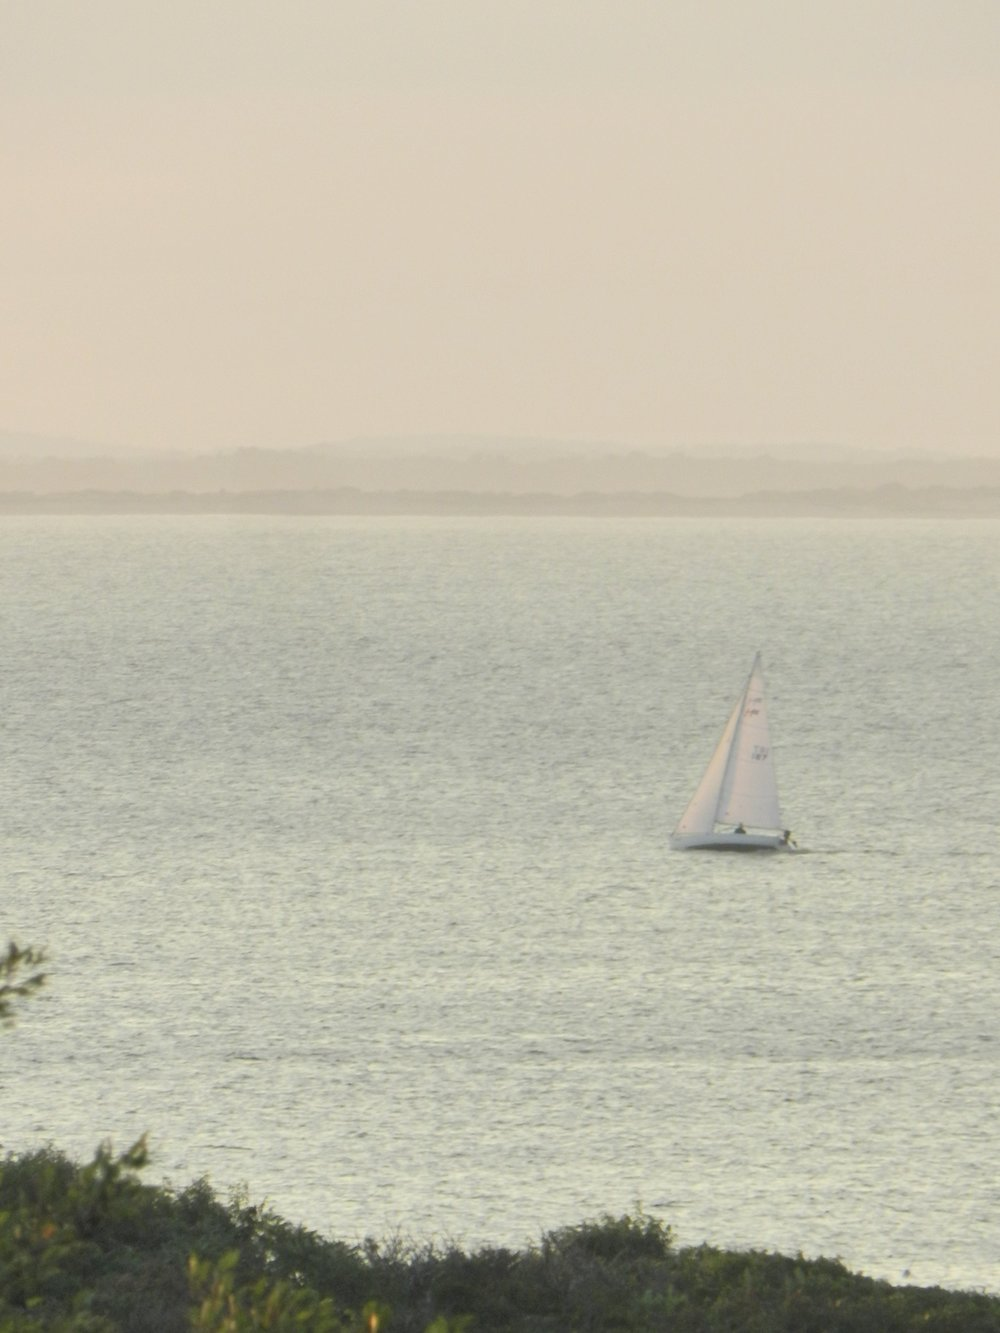 Sailboats and working fishing boats from Gloucester Harbor are frequent sights.